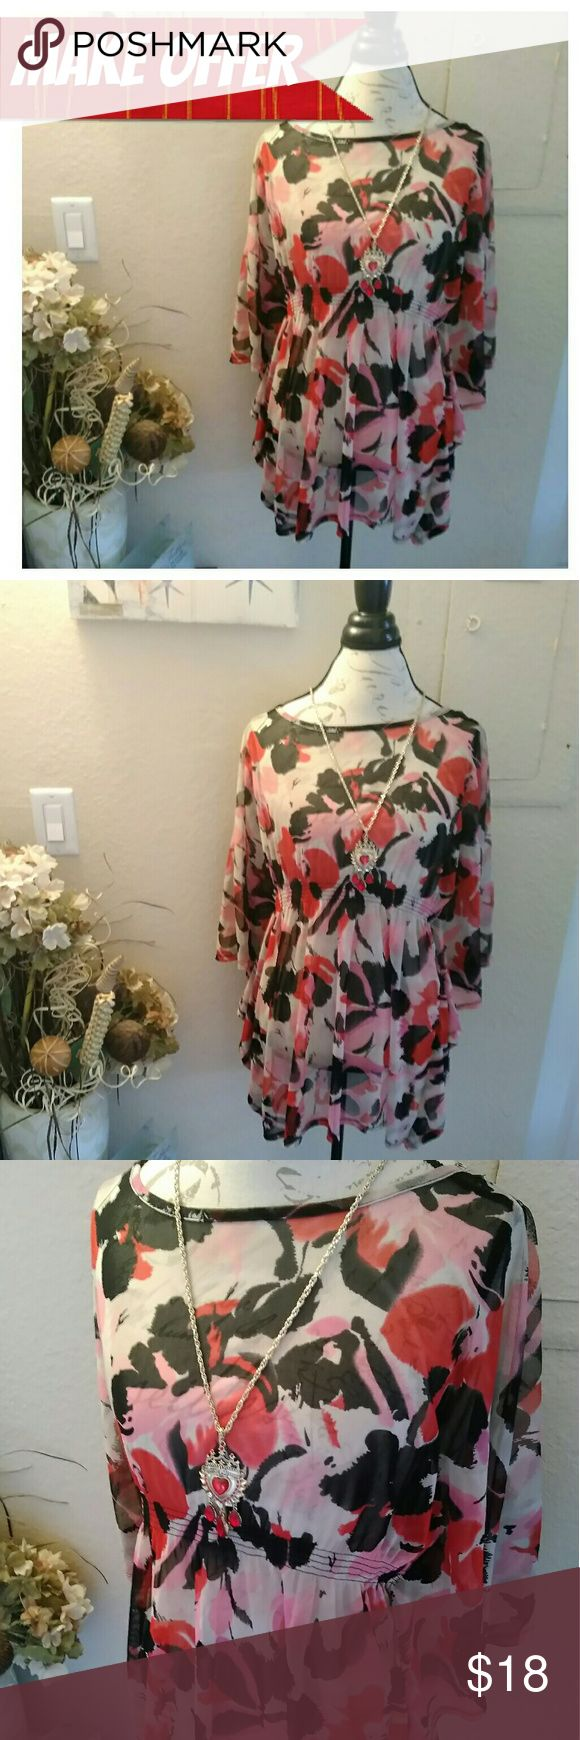 I?N?C Floral Pattern Loose Winged Shirt Medium *ASK FOR DISCOUNTED SHIPPING!*  BRAND: Macy's INC International Concepts Size: Medium Petite  It is a flowing Half Length Sleeves Beautiful Abstract flower pattern in hues of red, pink, black & white It is a See-Through Shirt  *BUNDLE TO SAVE! BUNDLE DISCOUNTS!* INC International Concepts Tops Blouses